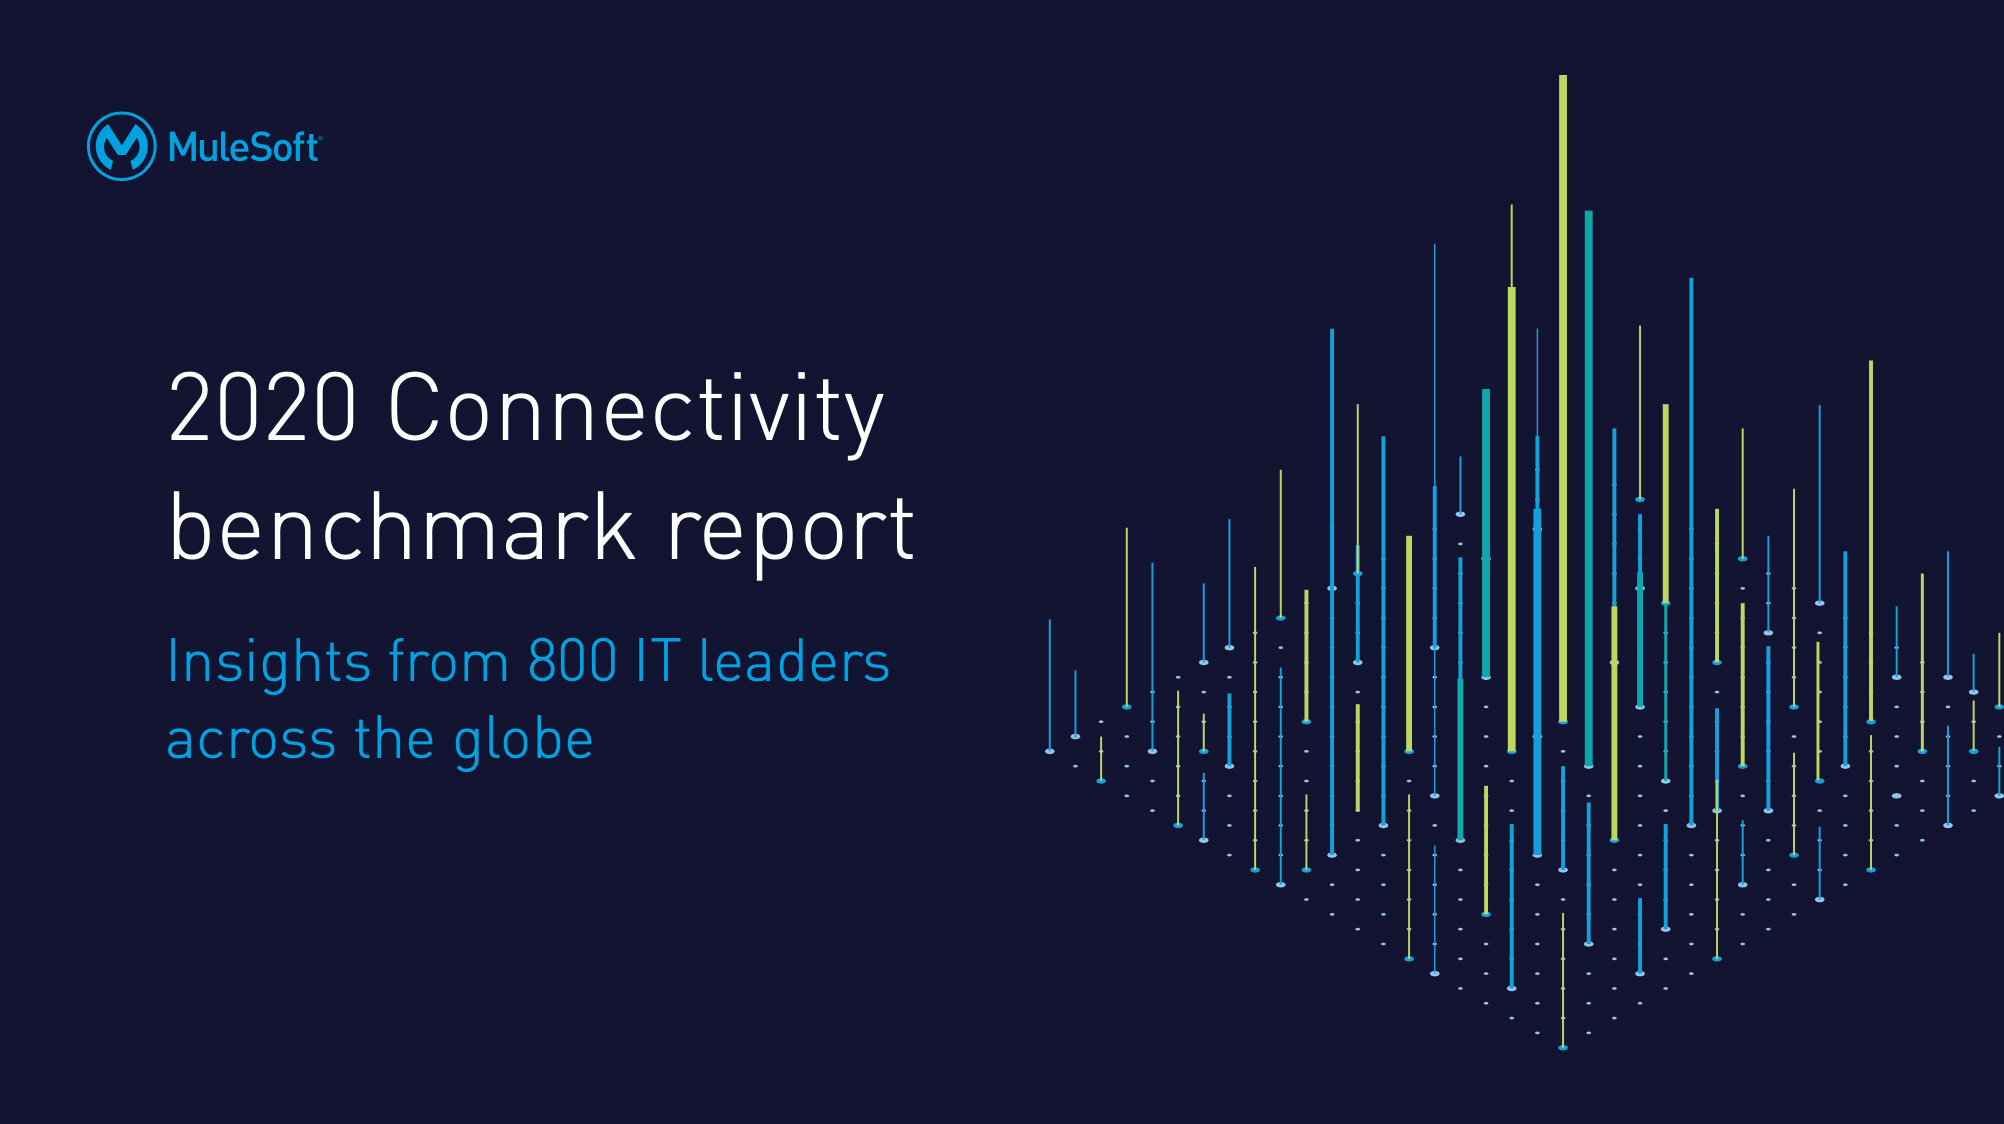 MuleSoft's 2020 Connectivity Benchmark Report